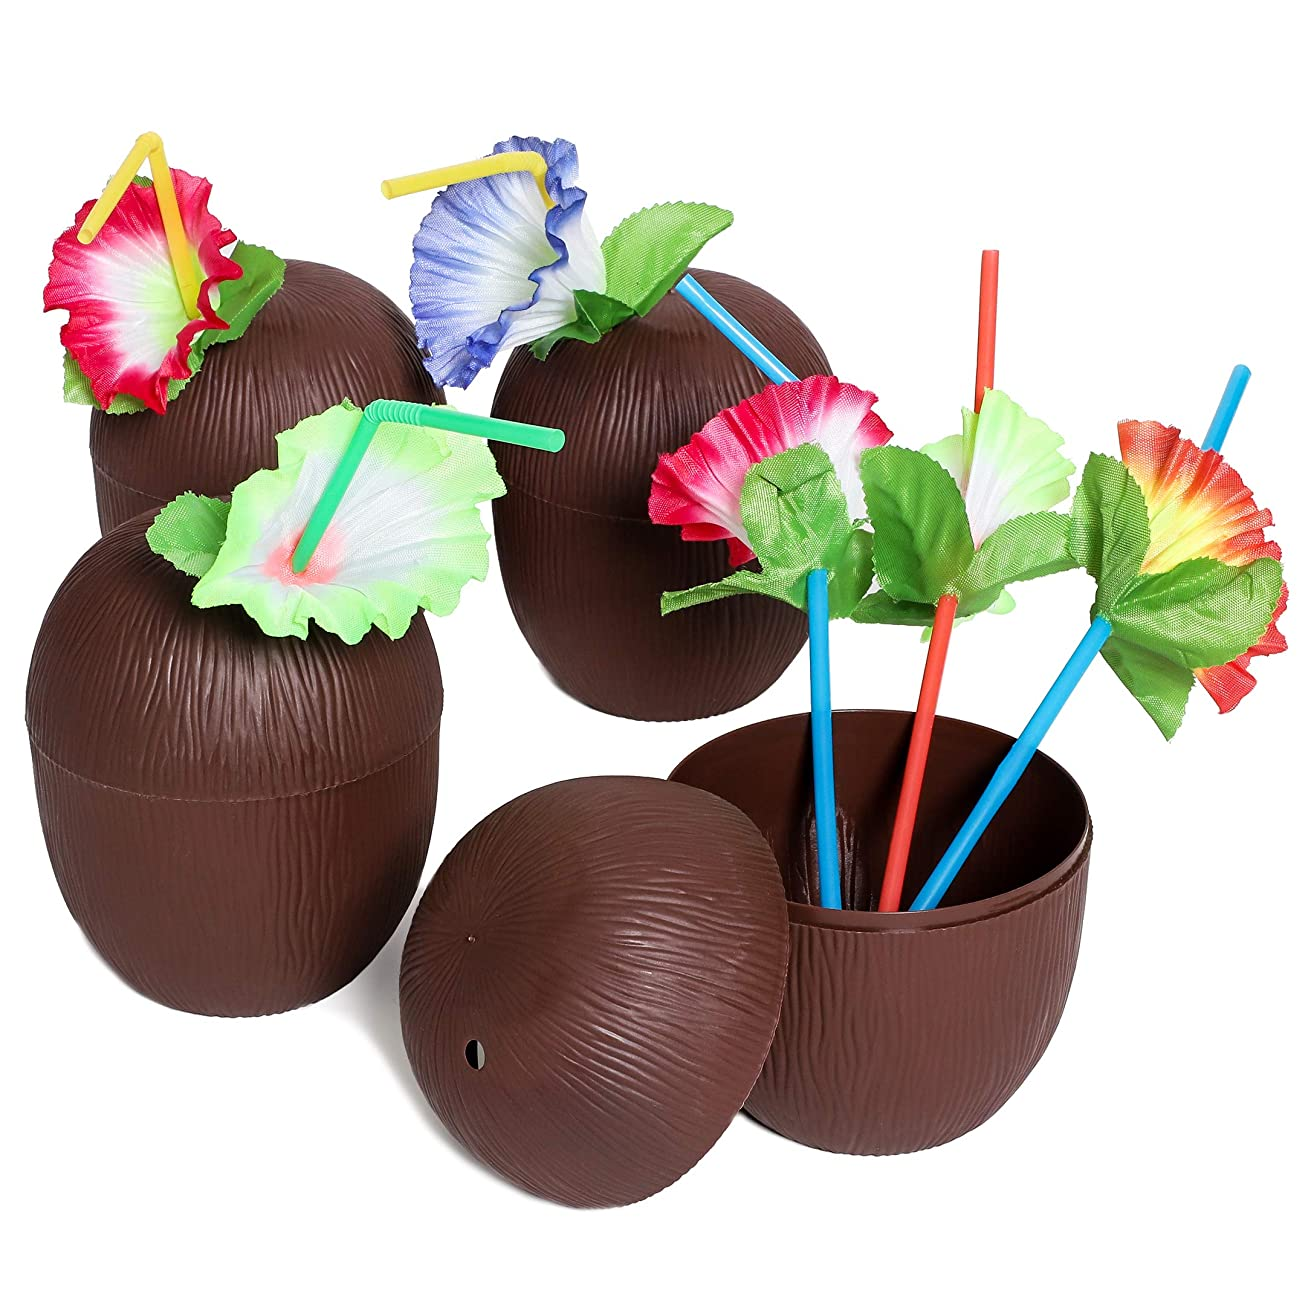 Juvale 12-Pack 16 Ounce Plastic Coconut Cups with Straws, Hawaiian Tropical Luau Party Supplies